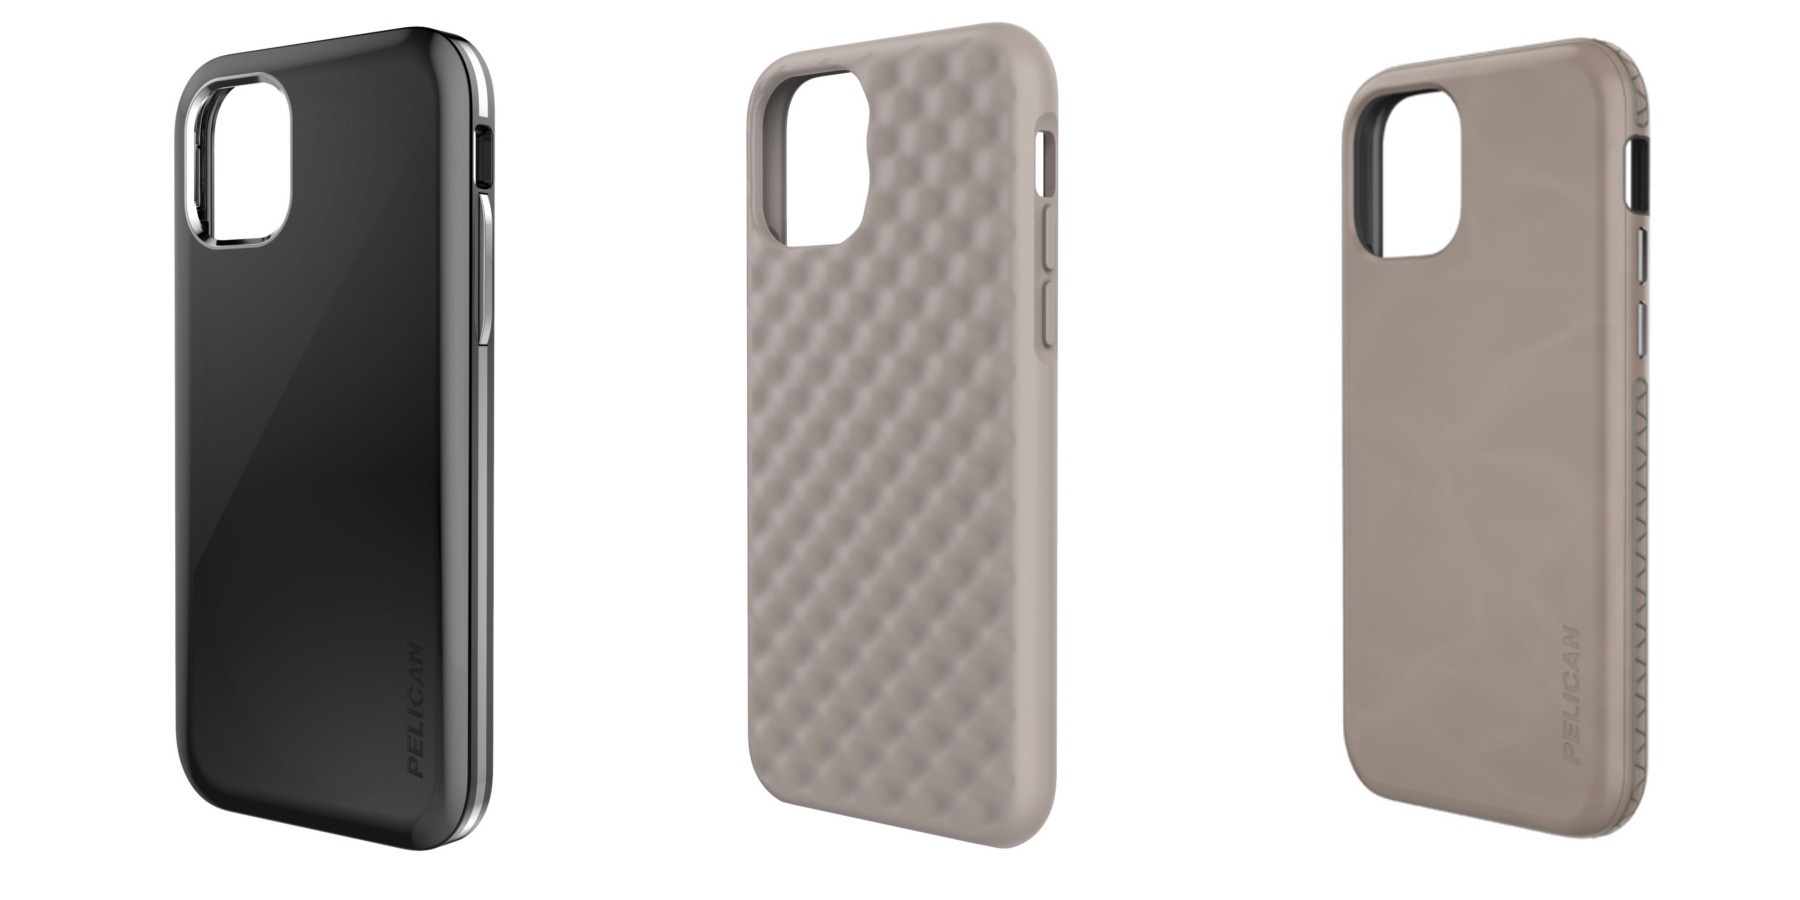 iPhone 11 cases from Pelican